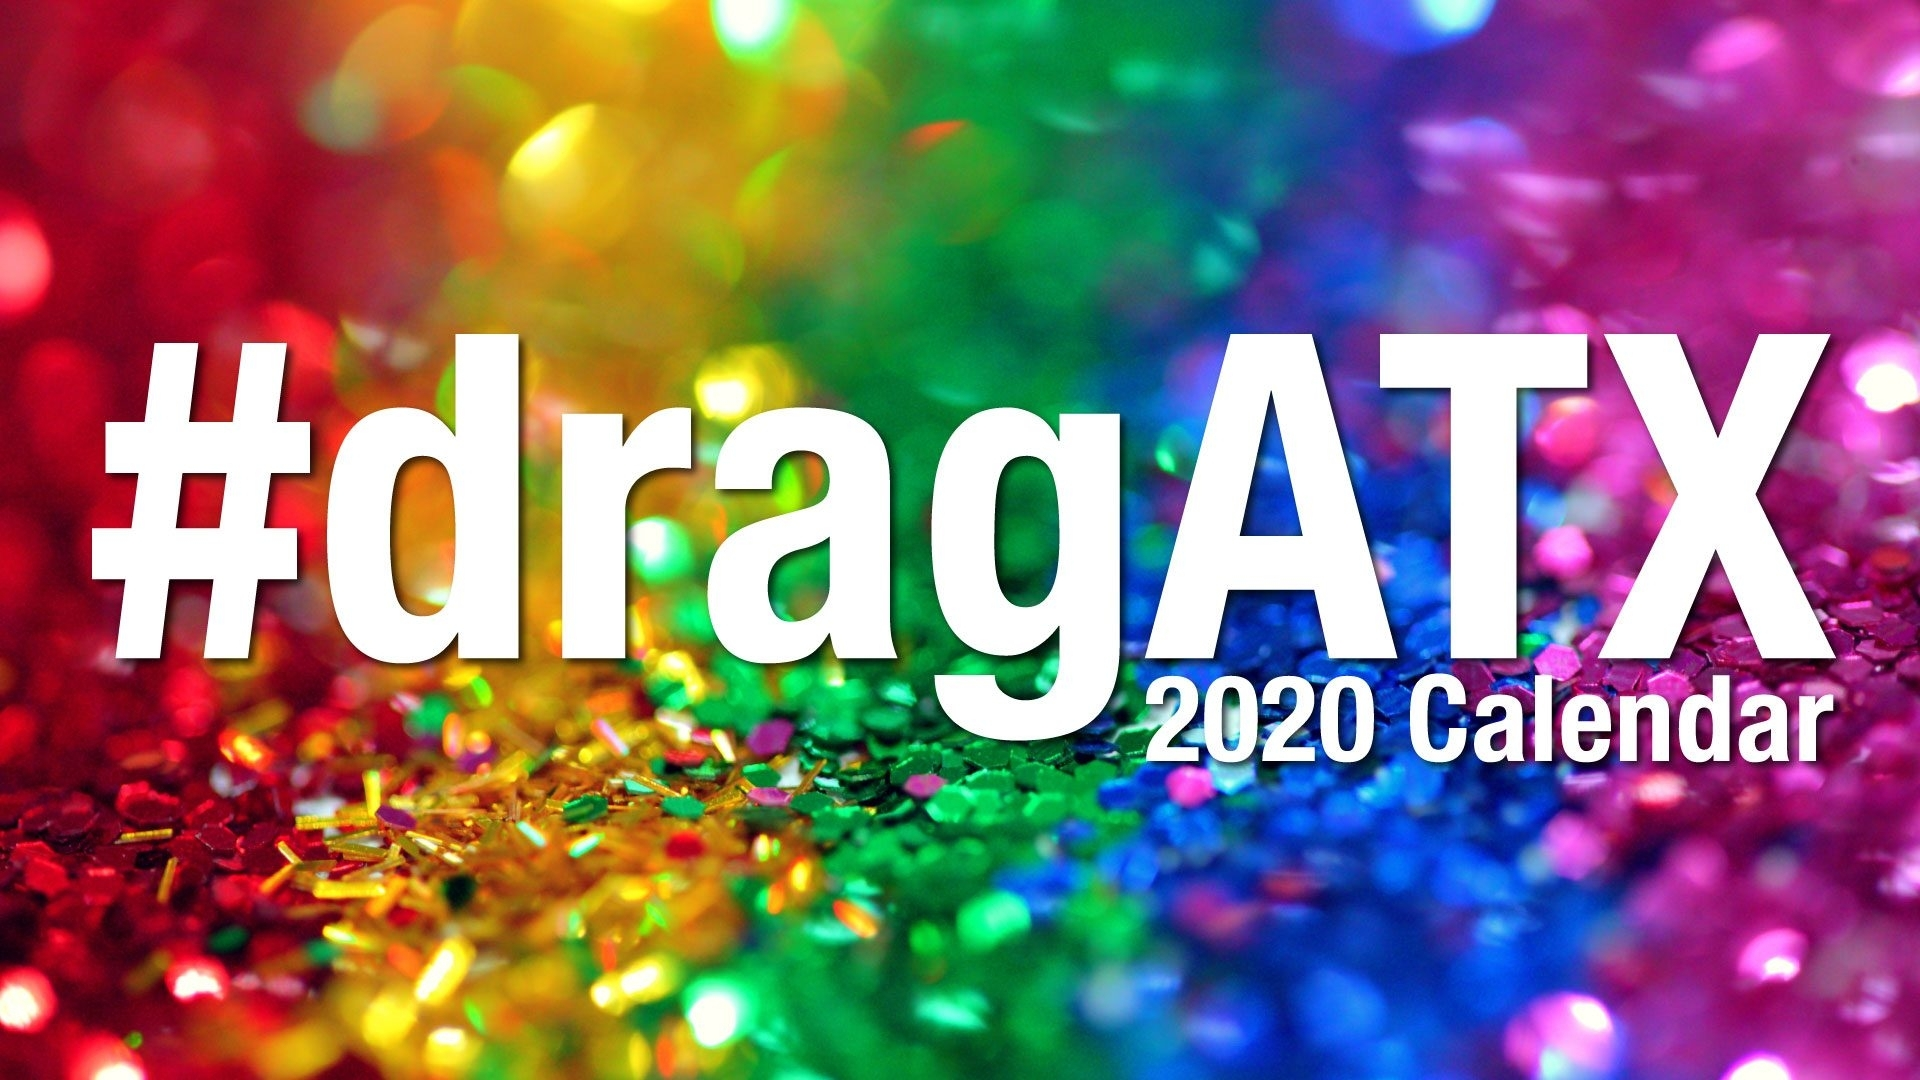 Dragatx 2020 Calendar - Therepubliq with Jan 2020 Calendar For Stephen F Austin